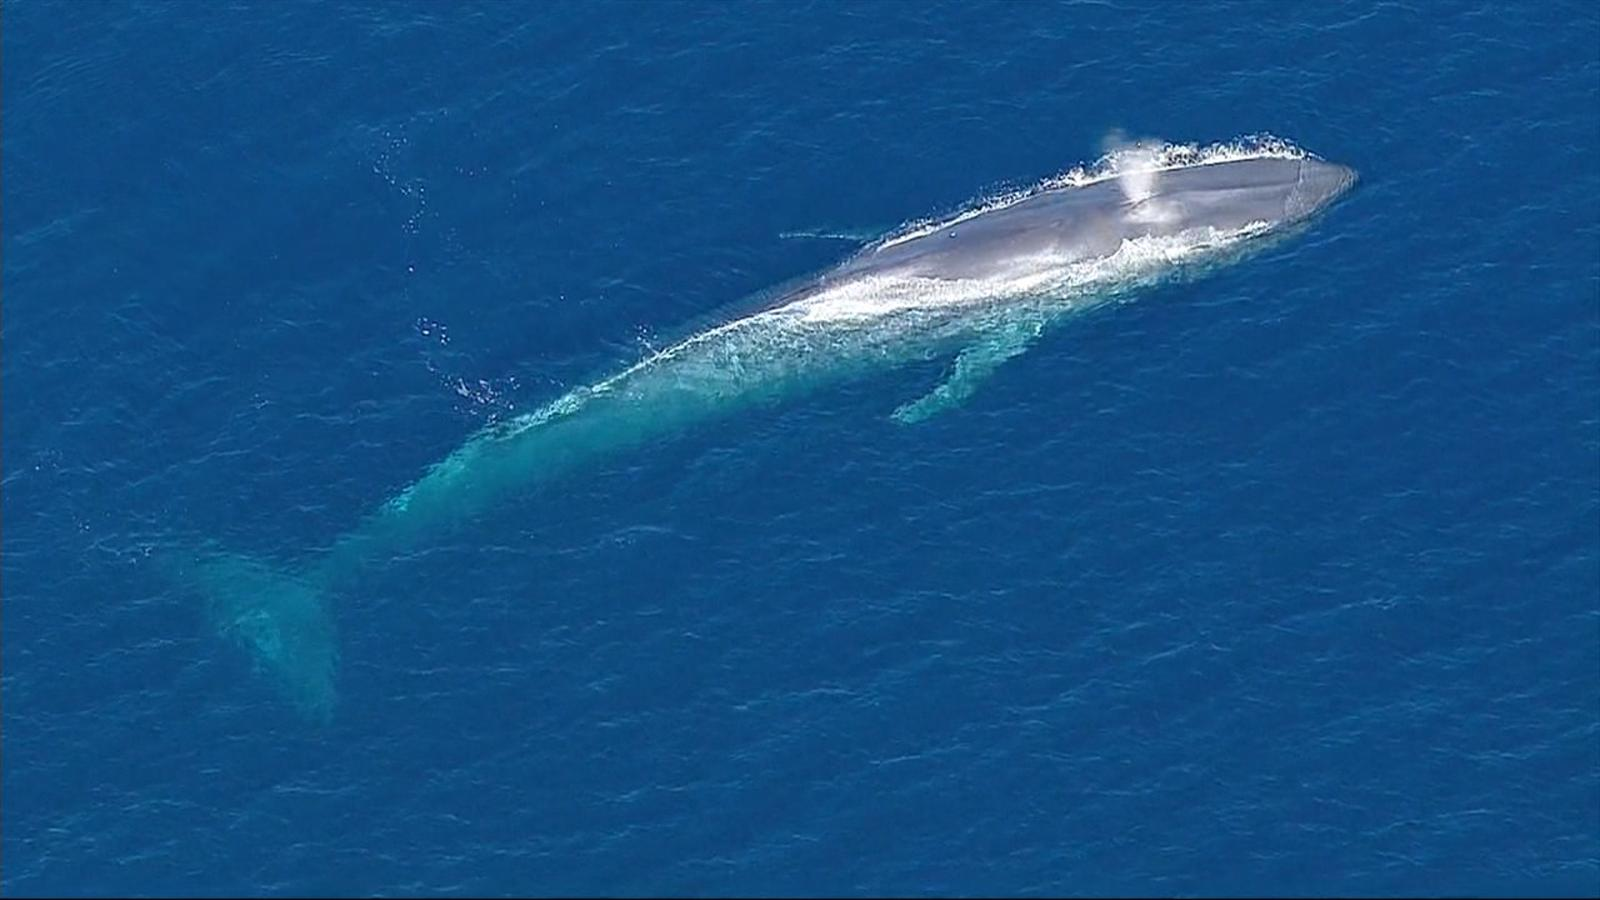 Yes the adult blue whale